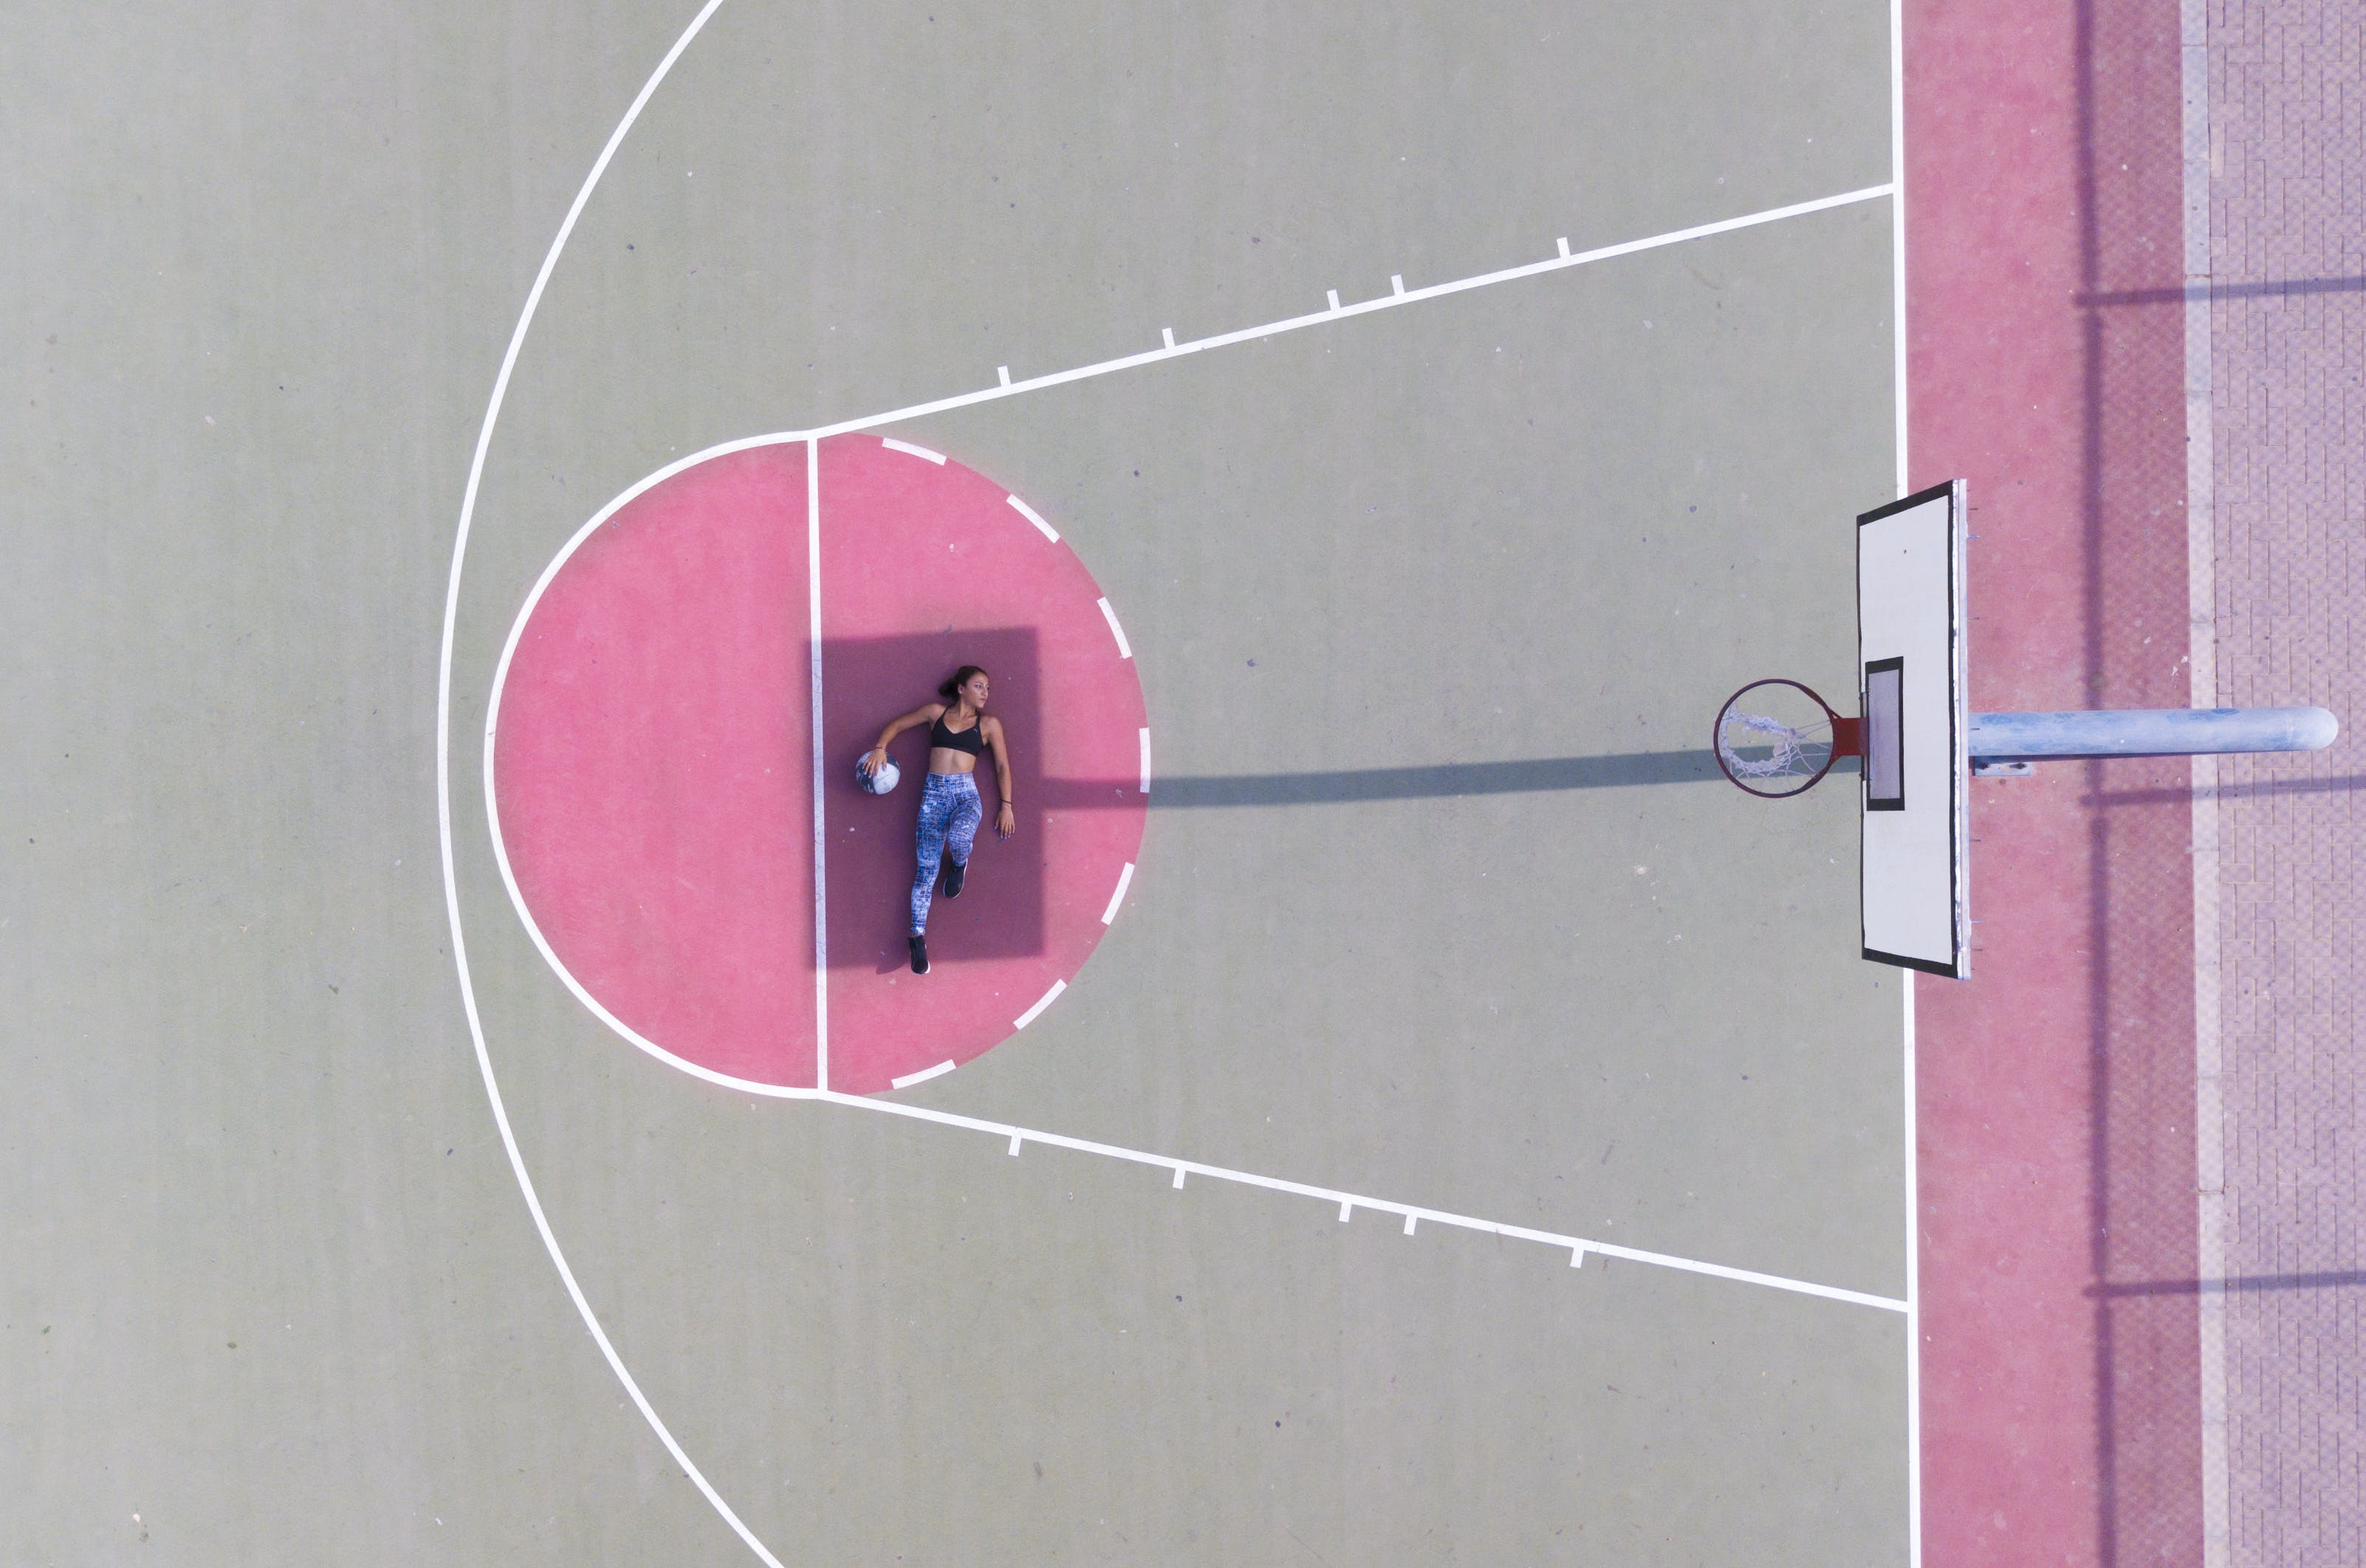 Woman Lying on Basketball Free Throw Line